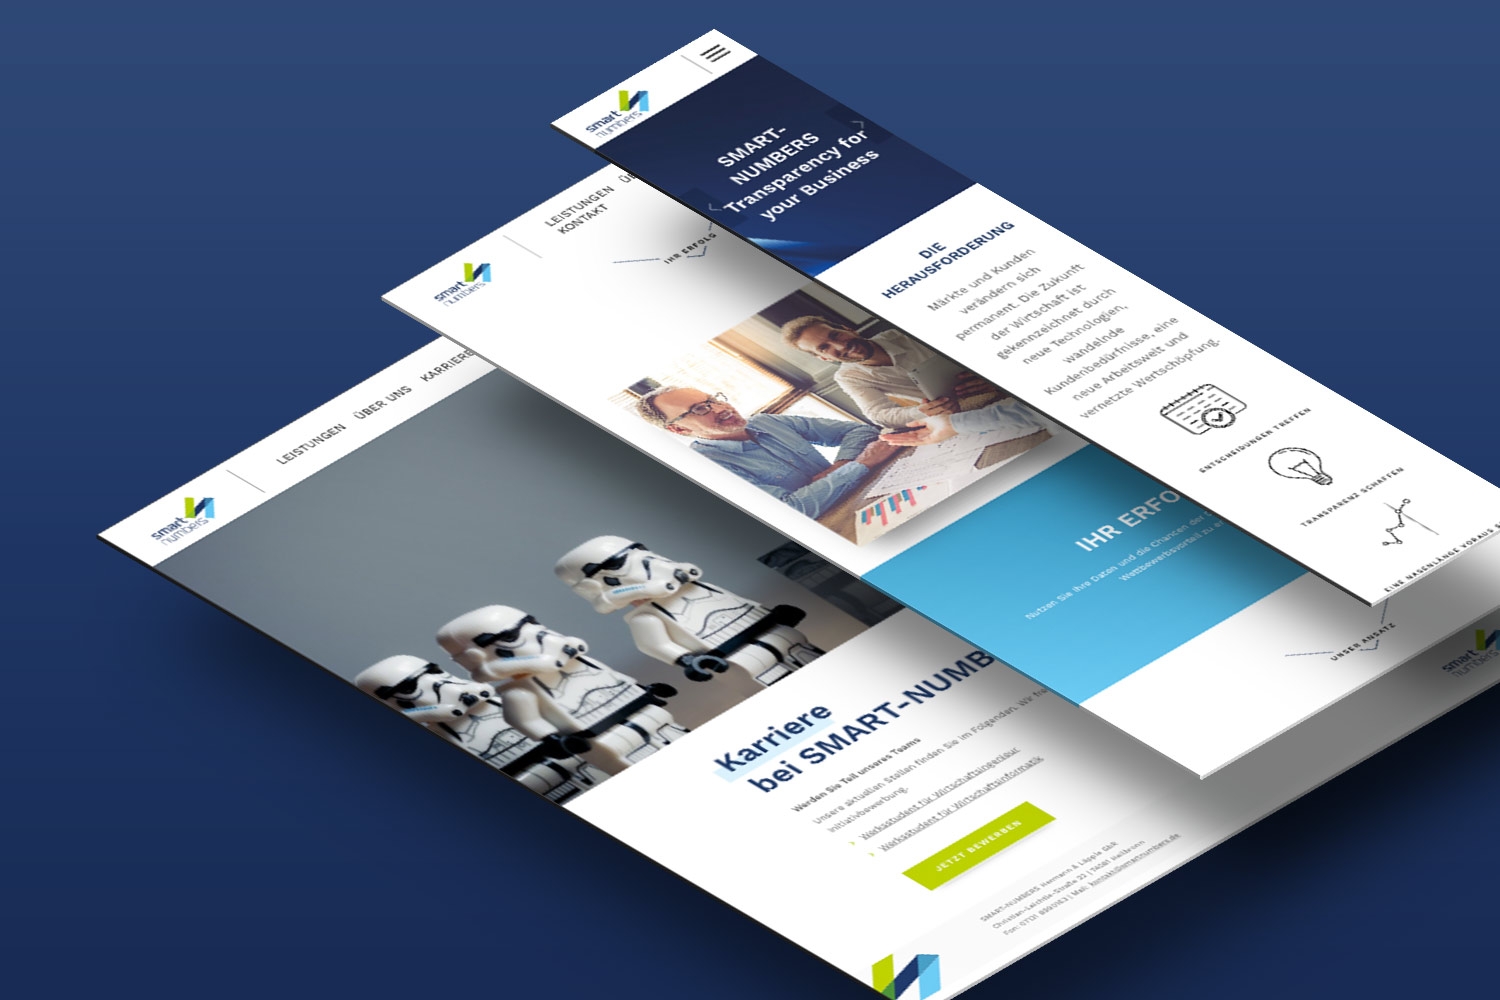 Neckarmedia Corporate Design Smart Numbers